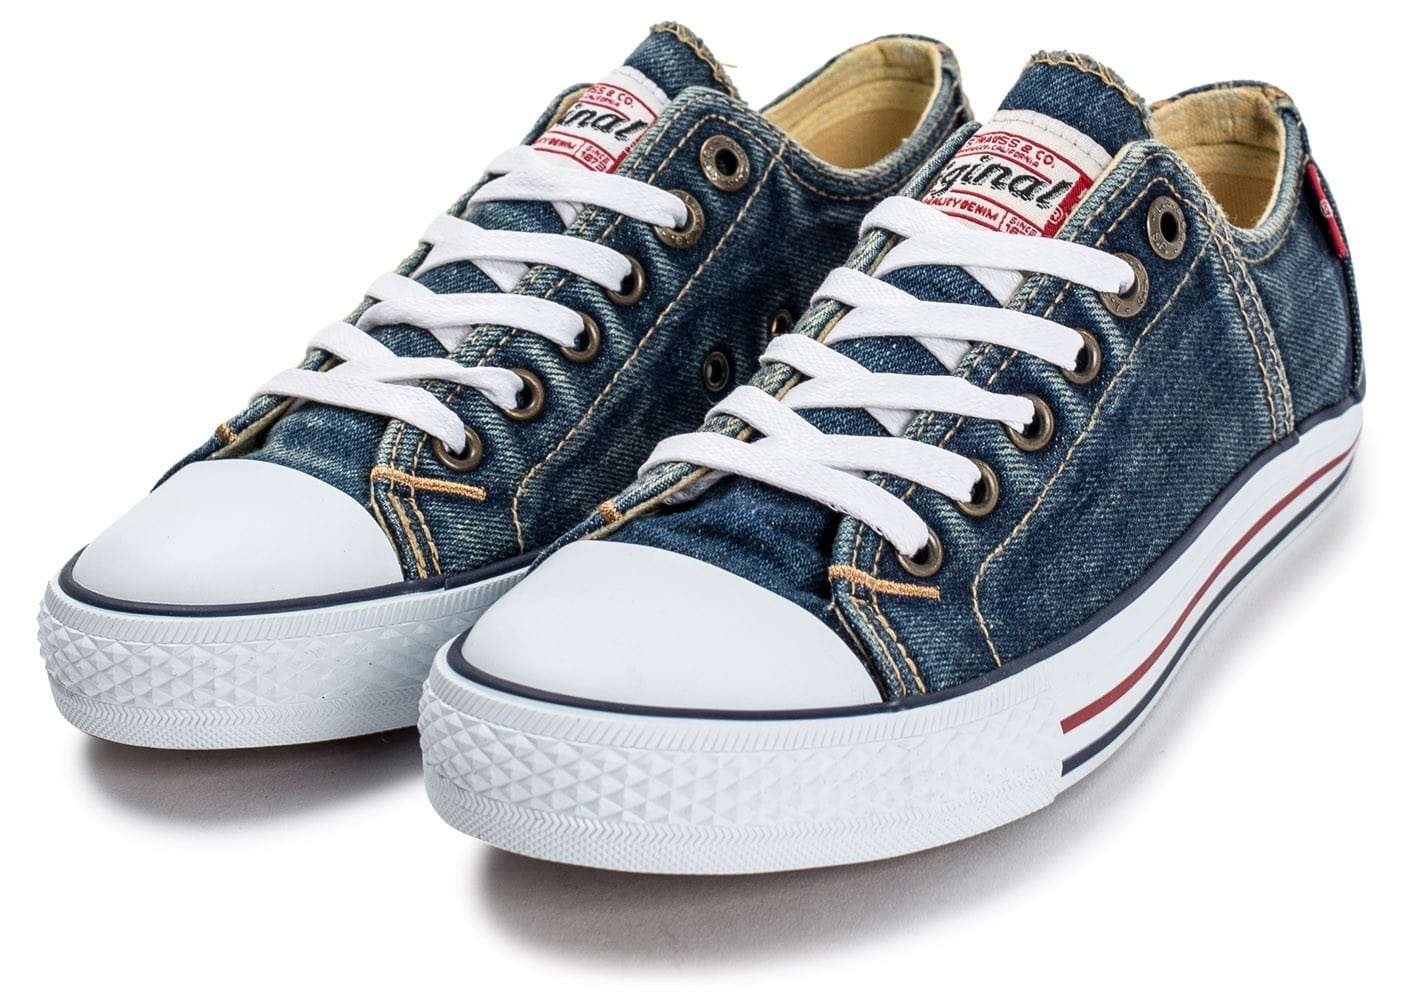 Chaussure Levis (style converse)